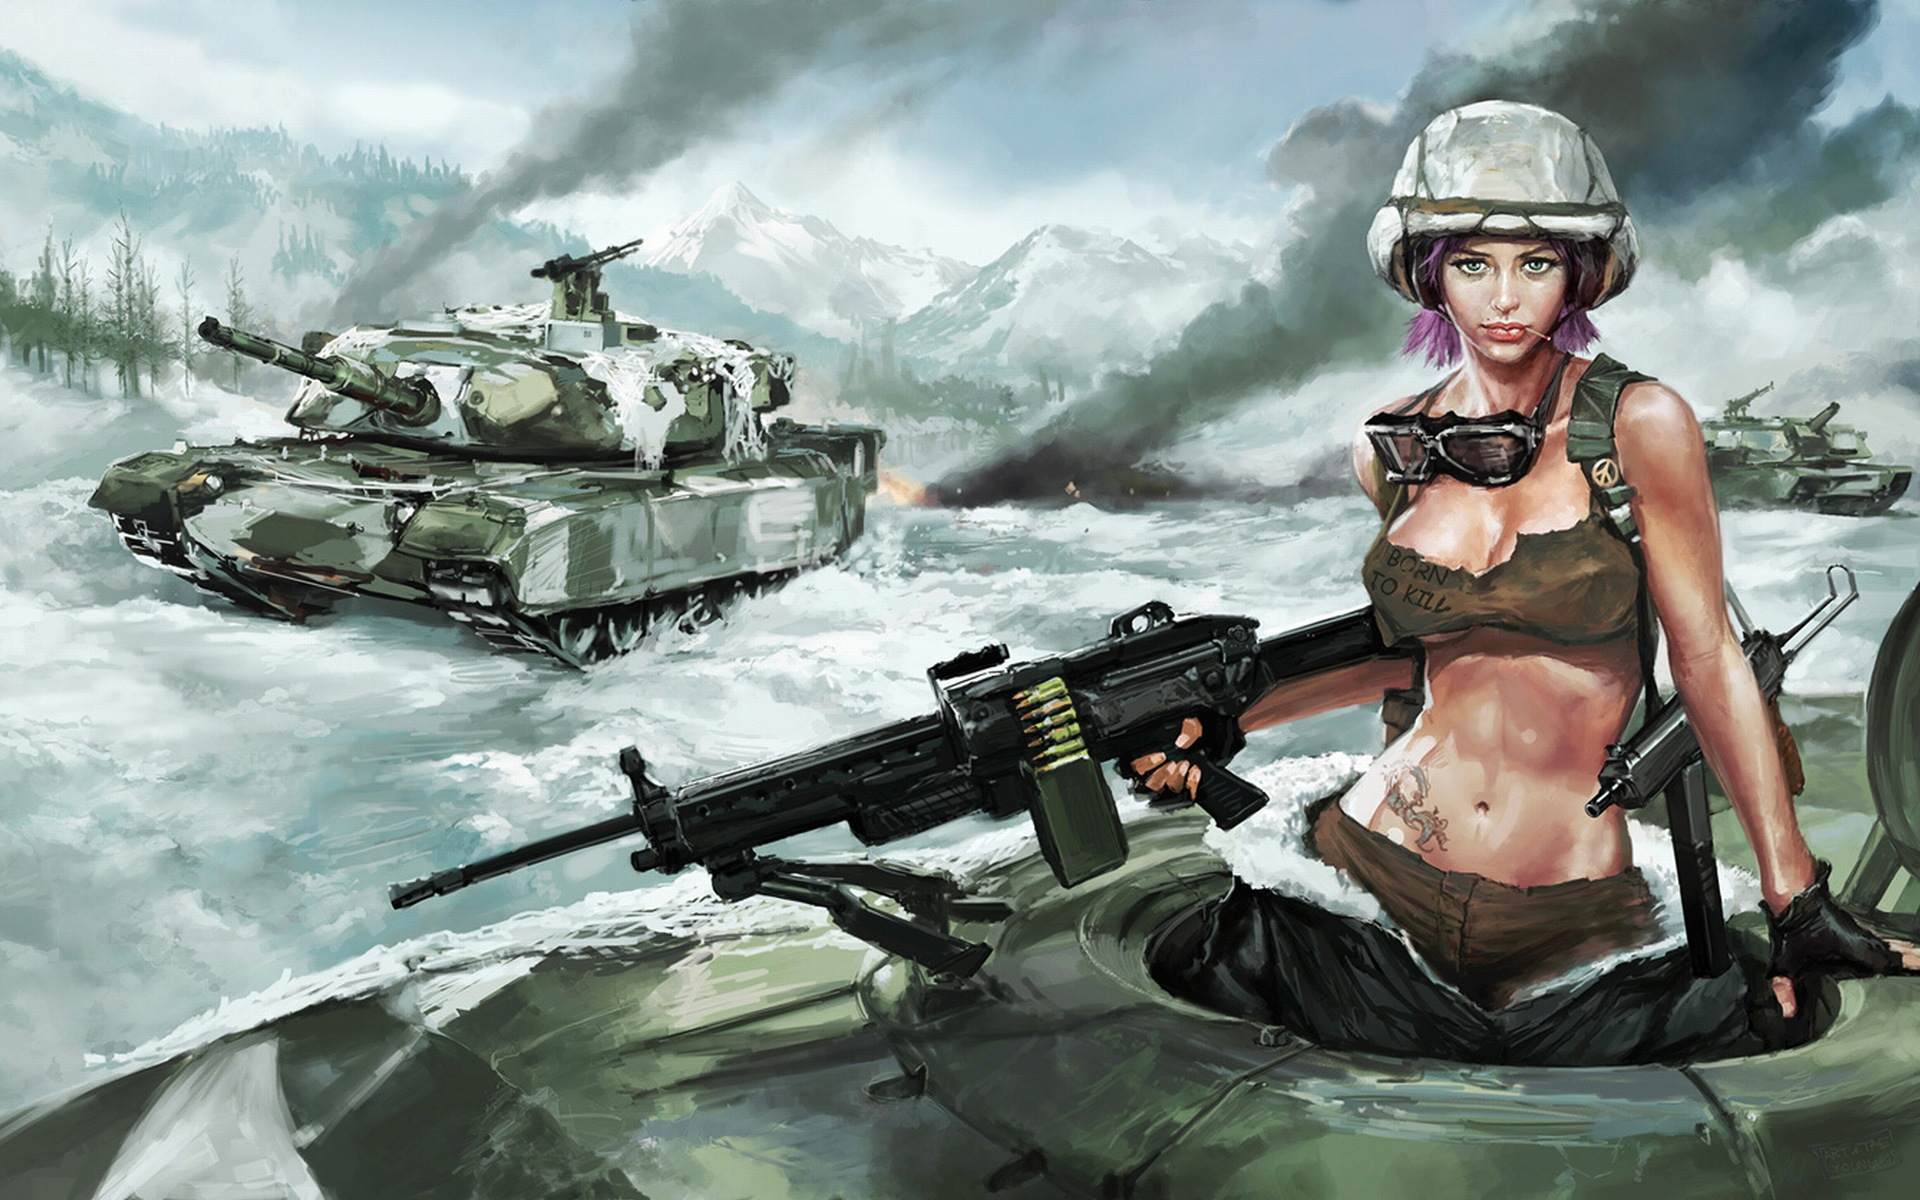 Army Tanks And Girls